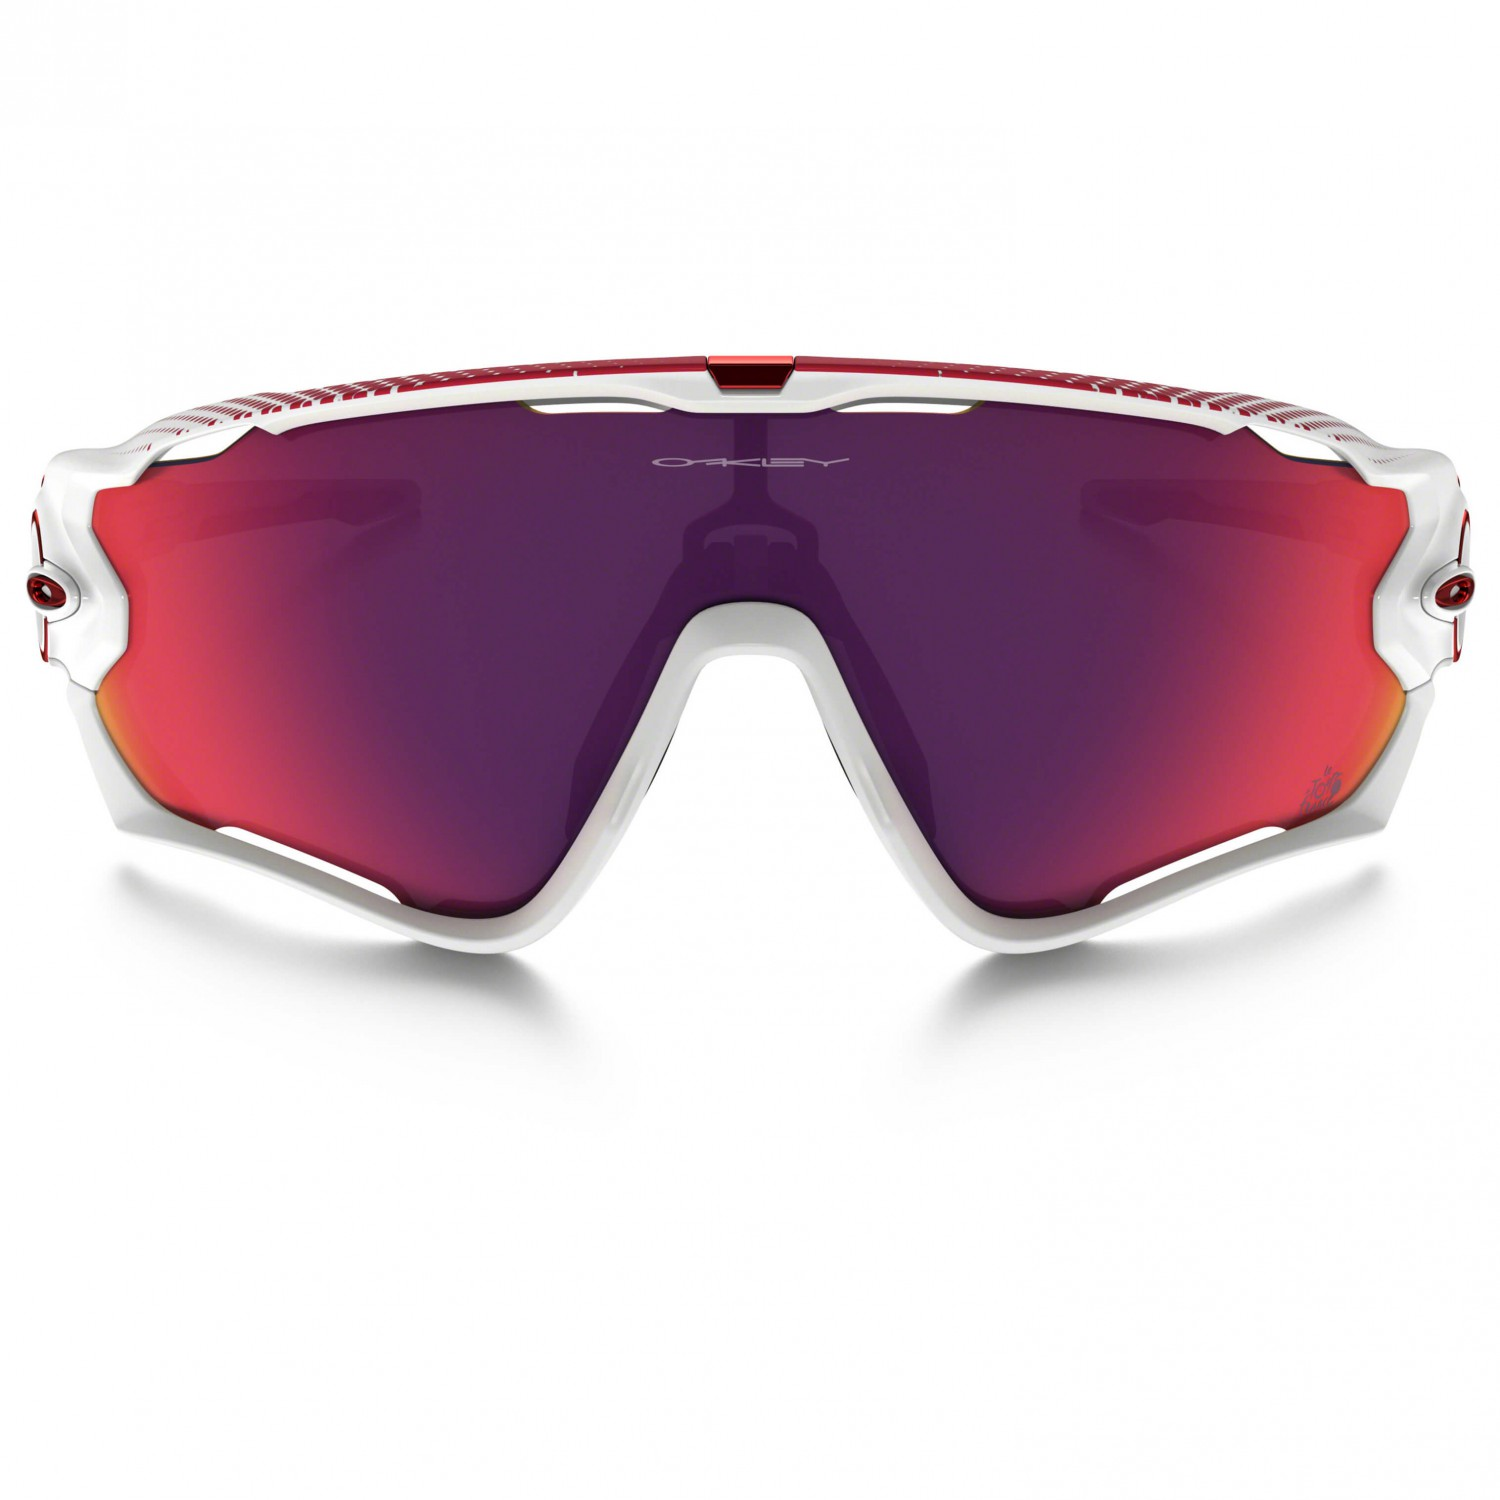 Oakley Jawbreaker Prizm >> Oakley Jawbreaker Prizm Road - Cycling Glasses | Free UK Delivery | Alpinetrek.co.uk